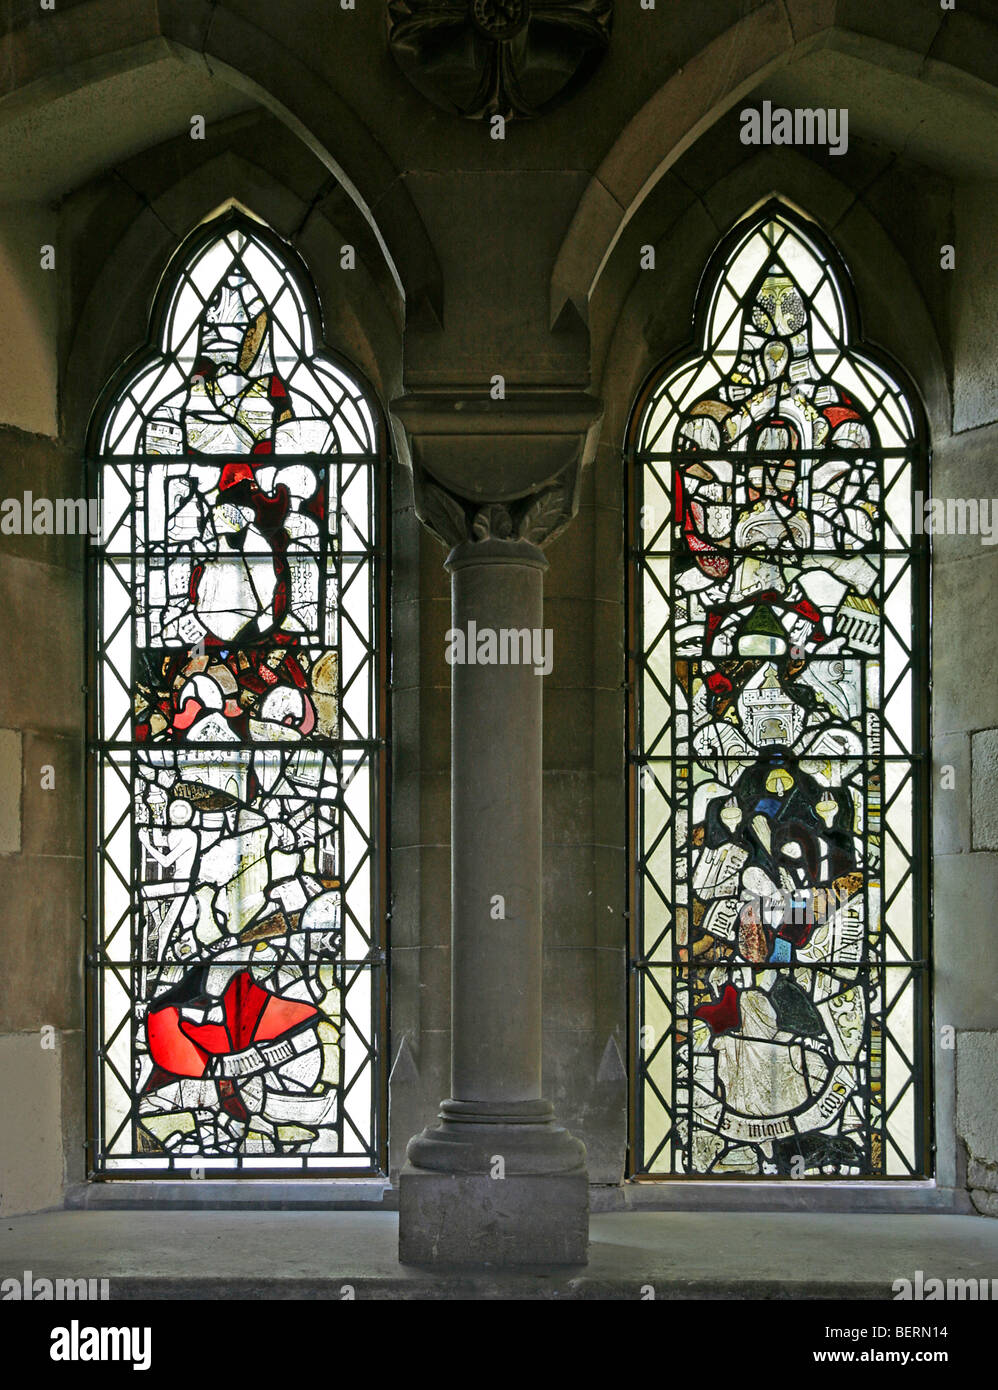 Fragments of Medieval Stained Glass collected in two windows at Church of St Peter, Allexton, Leicestershire - Stock Image